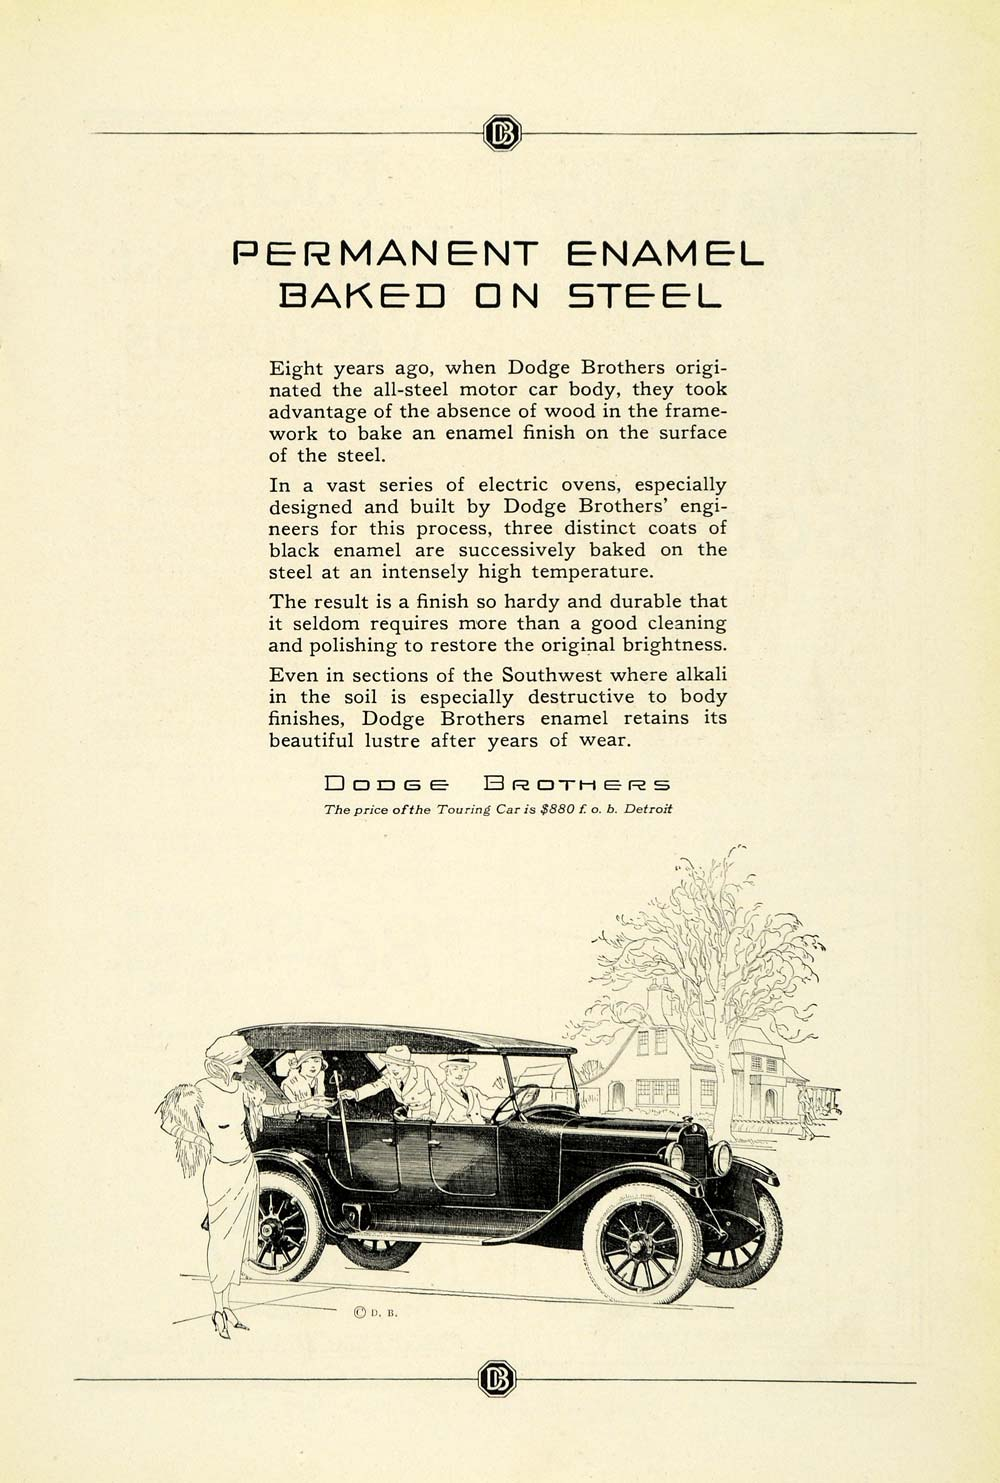 1923 Ad Antique Enclosed Dodge Automobile Convertible Touring Motor Car NGM1